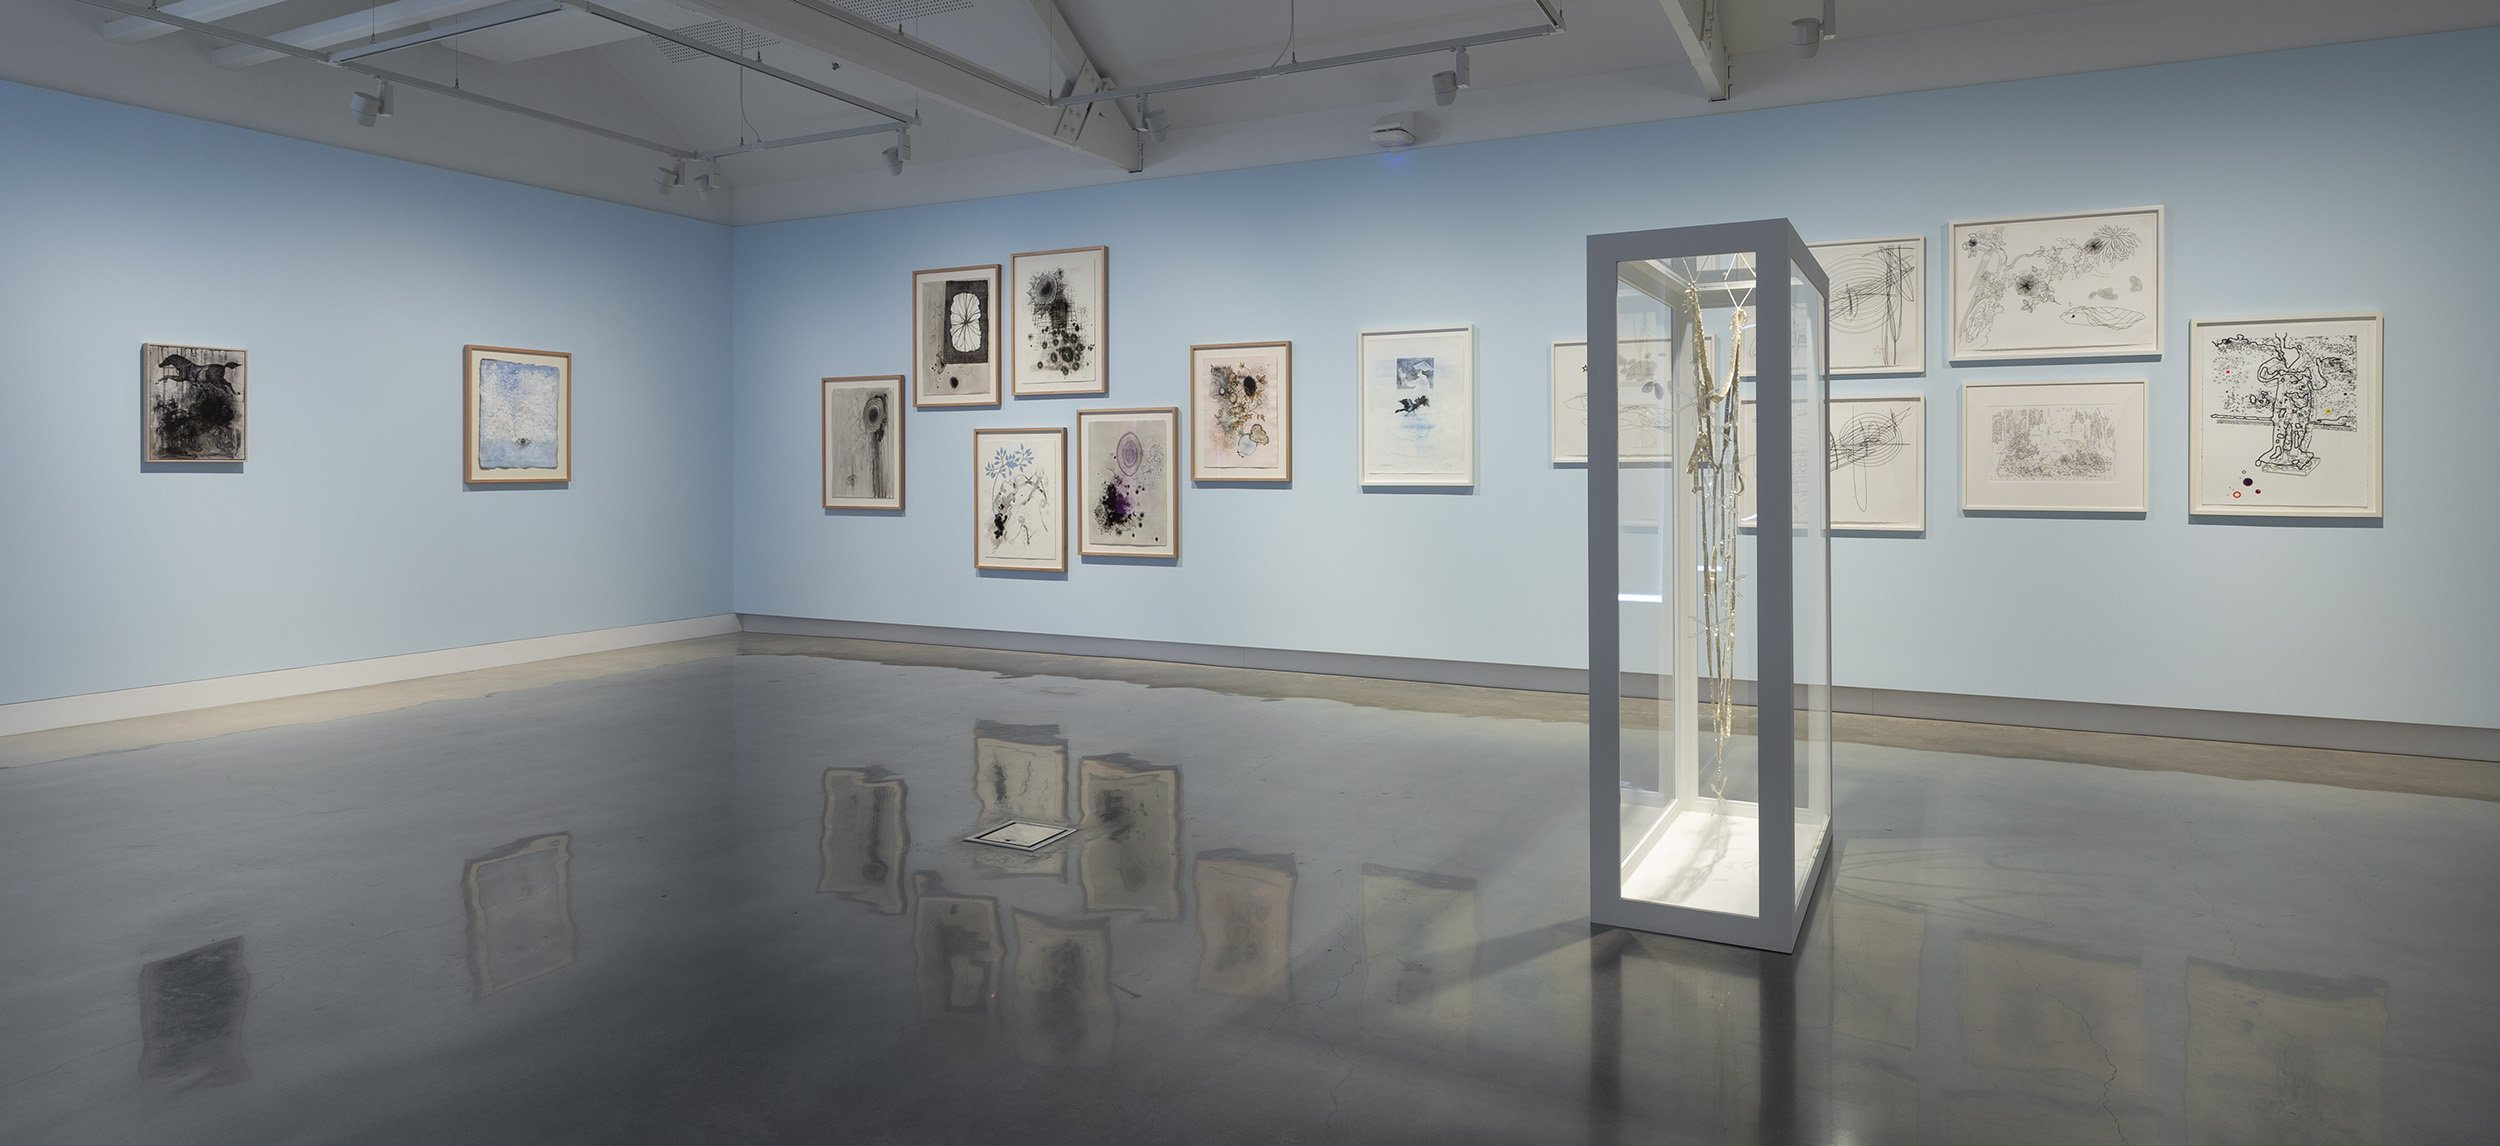 Image shows a standing 3D frame, inside which hangs a black beaded decorative artwork. Behind are other framed artworks hung on blue gallery walls.